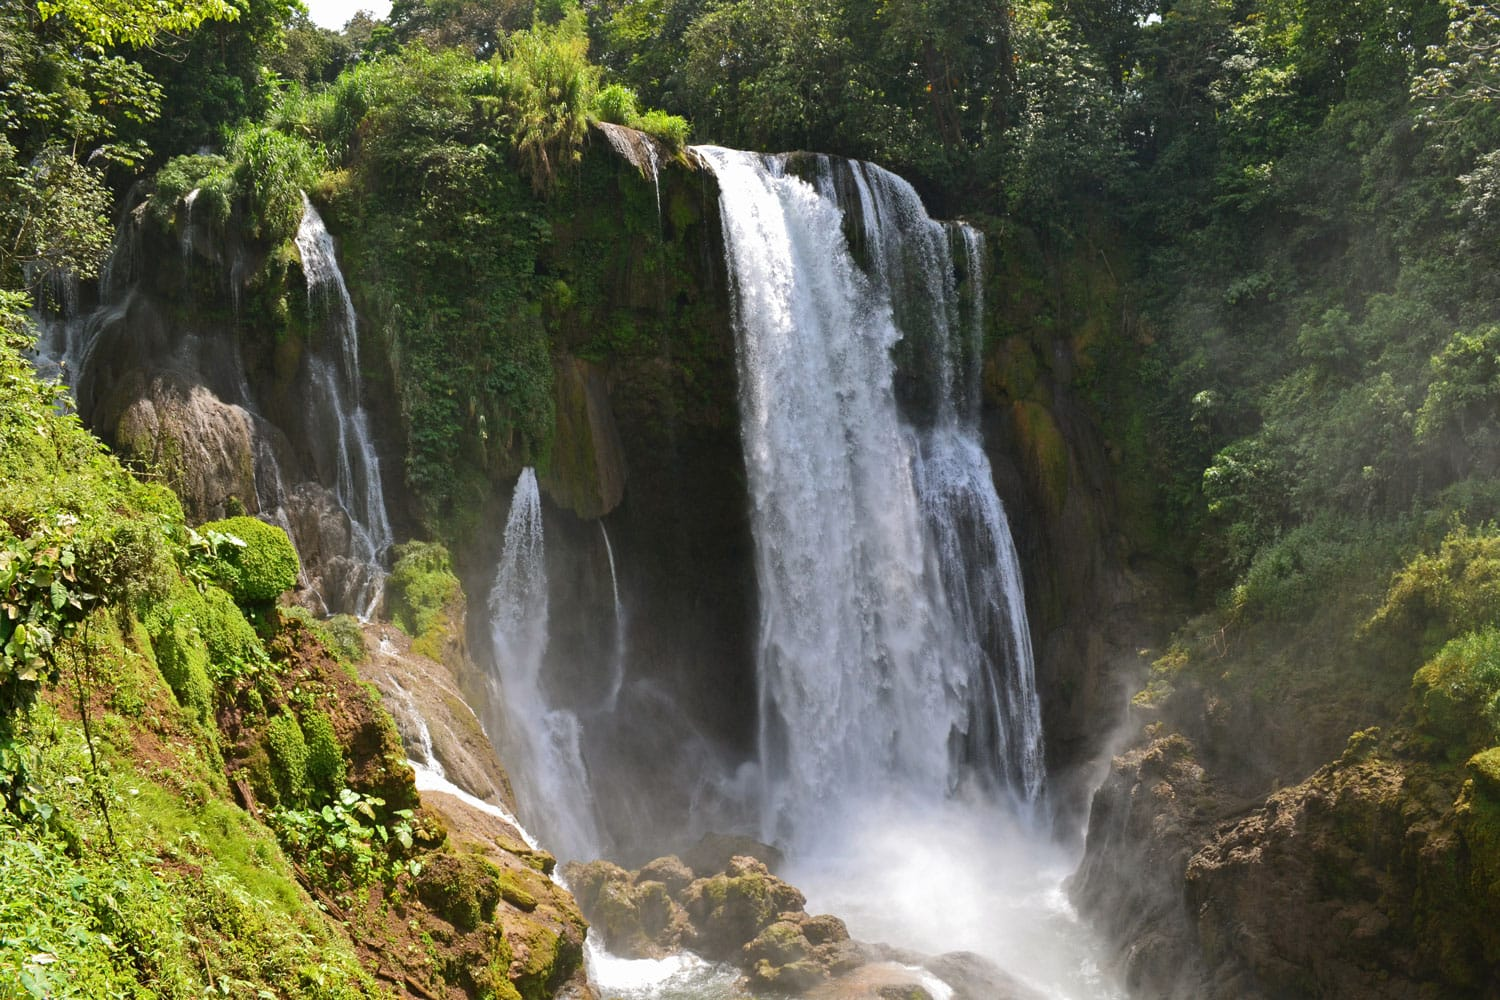 Pulhapanzak waterfall in Honduras